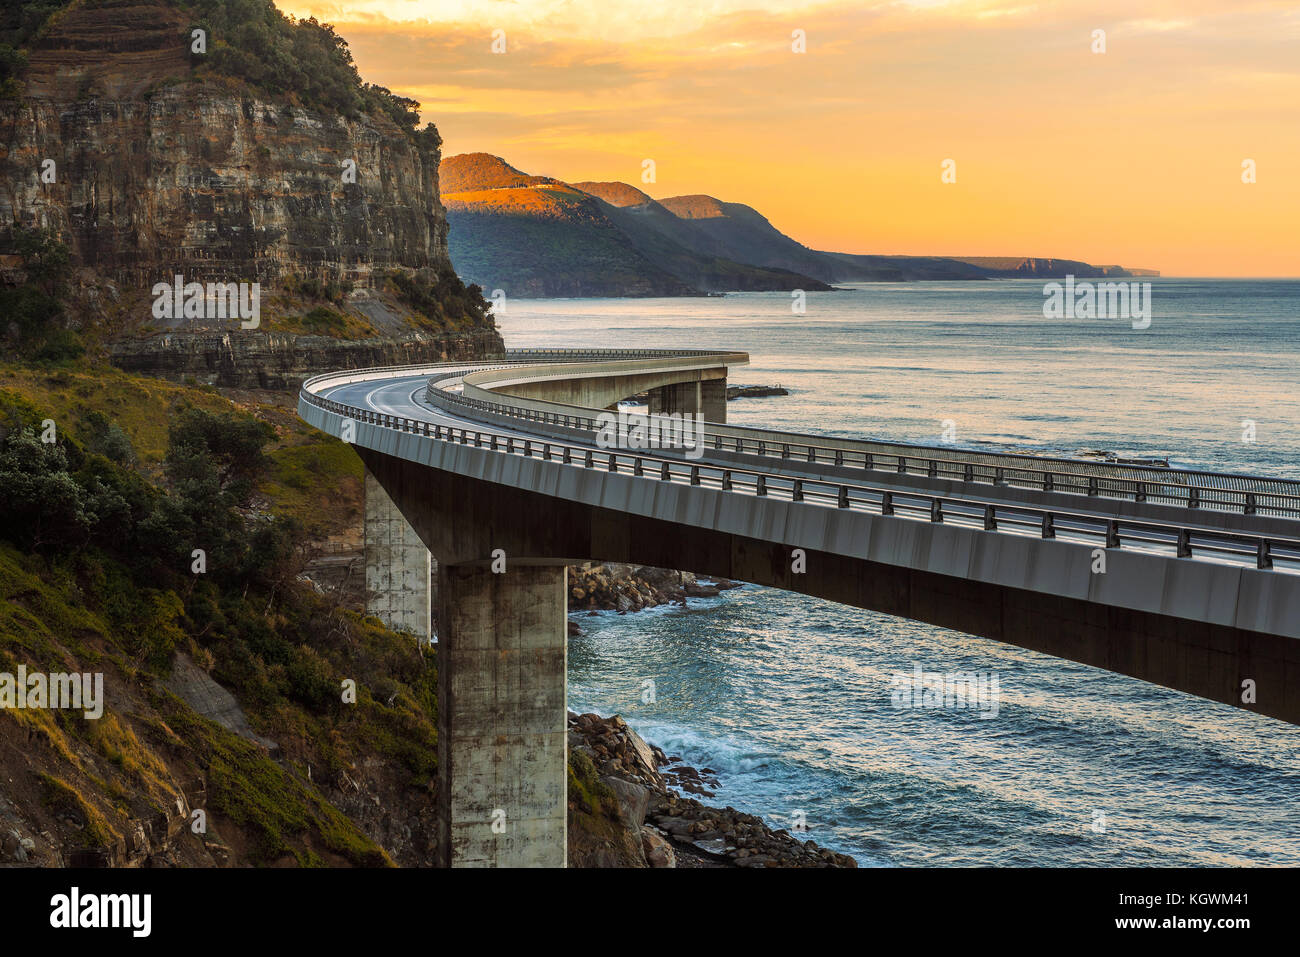 Sunset over the Sea cliff bridge along Australian Pacific ocean  - Stock Image